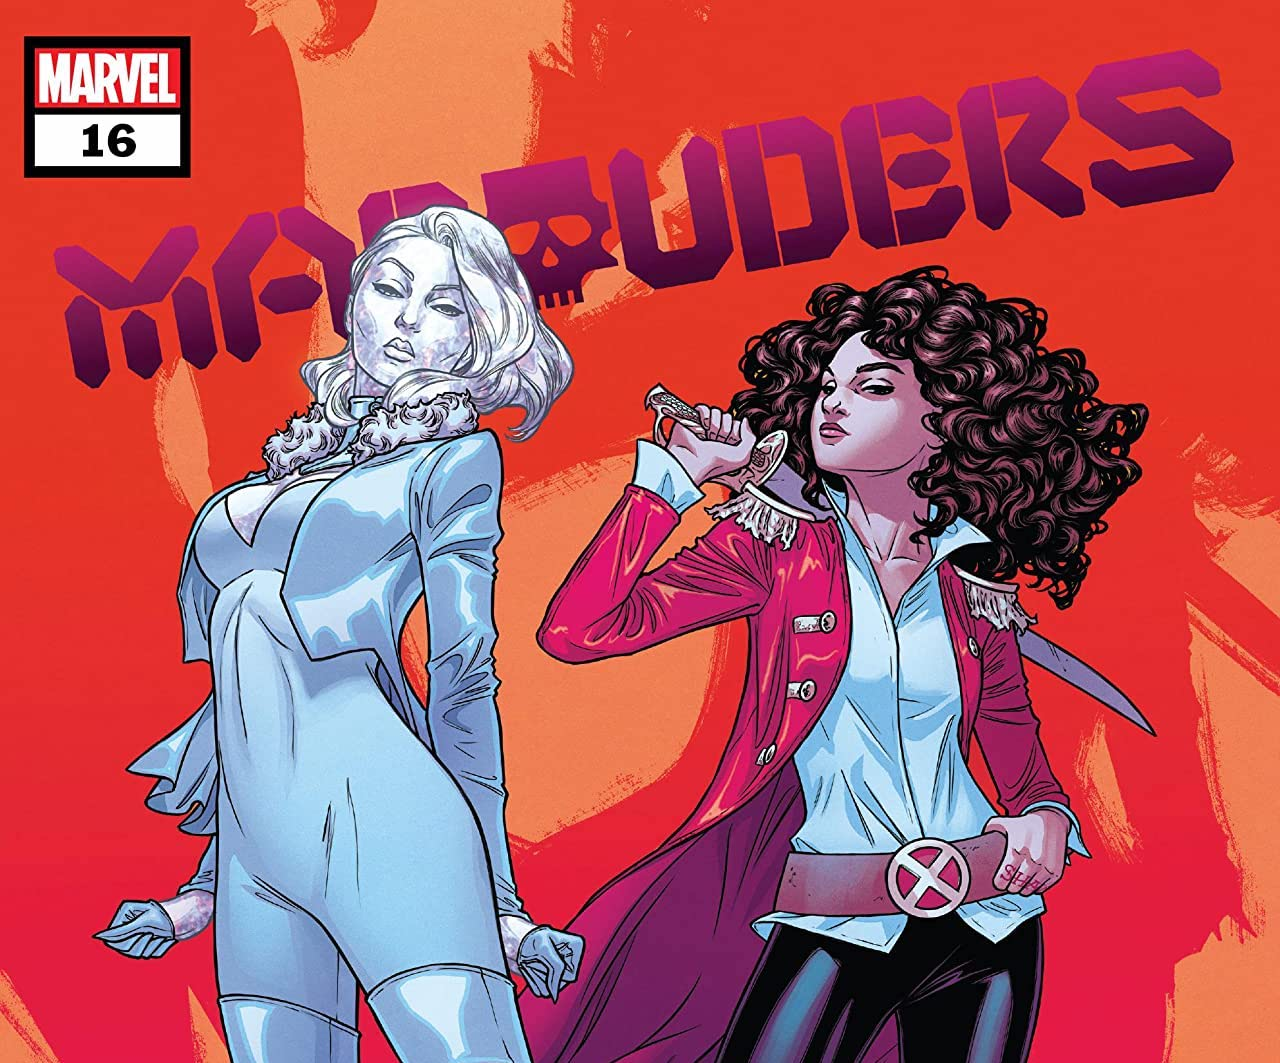 EXCLUSIVE Marvel Preview: Marauders #16